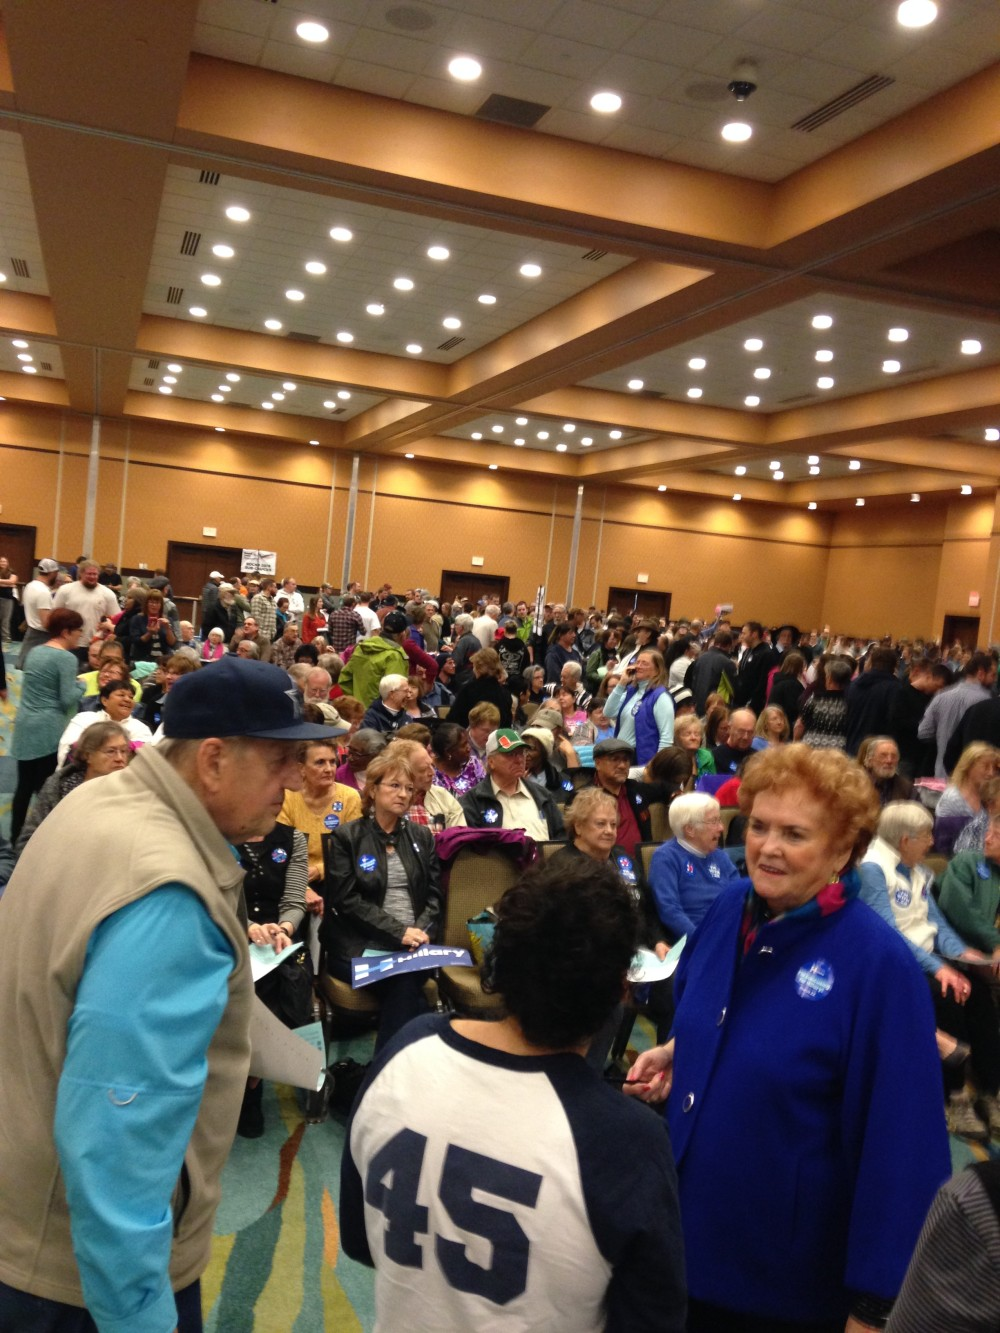 Just to give everyone an idea of how packed the caucus was. It was loud and fun and electric and it was great to see this many Democrats be passionately involved in such a Red State.